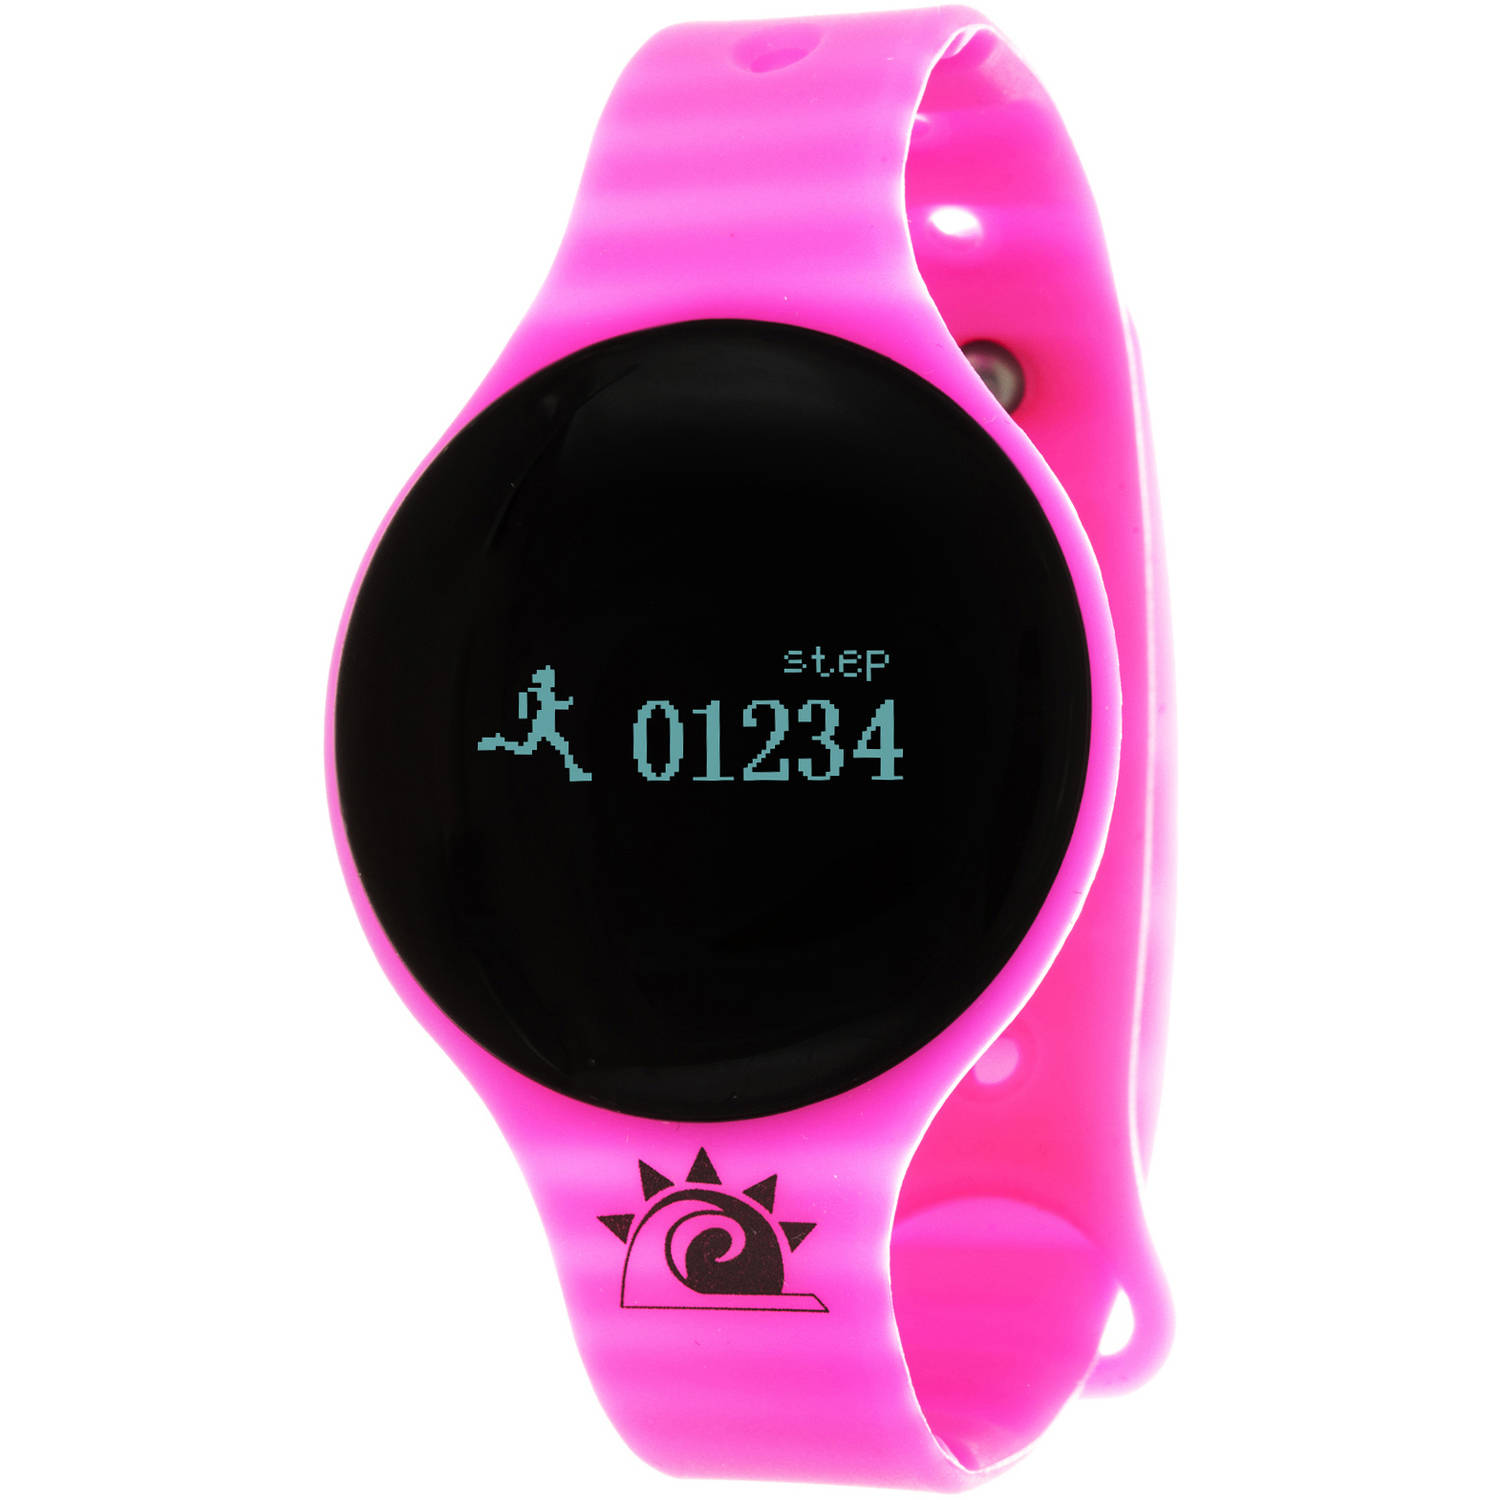 Zunammy Activity Tracker Watch, Multiple Colors Available